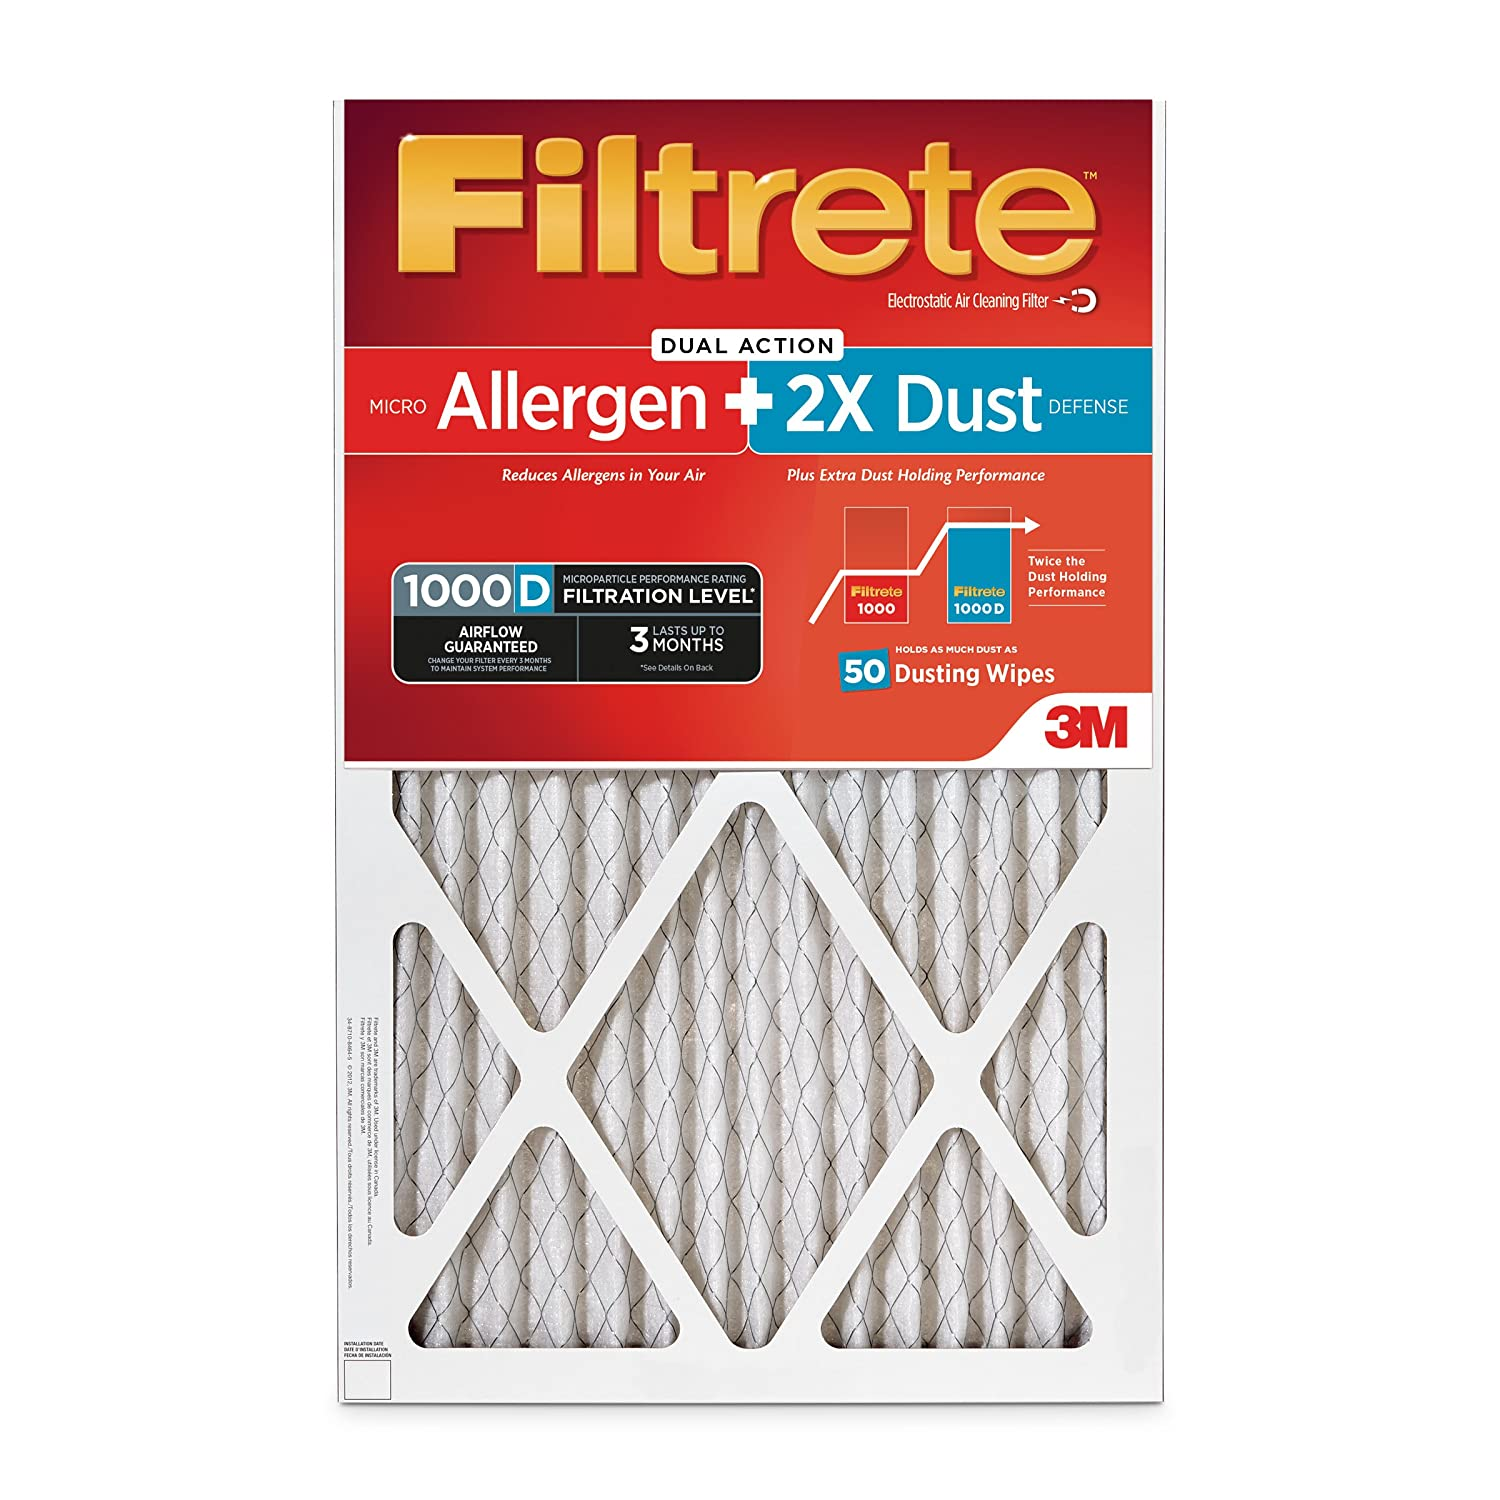 Filtrete MPR 1000D 20 x 30 x 1 Micro Allergen PLUS DUST AC Furnace Air Filter, Captures Small Particles like Pollen & Pet Dander, Uncompromised Airflow, 6-Pack 3M AD22PL-6PK-2E